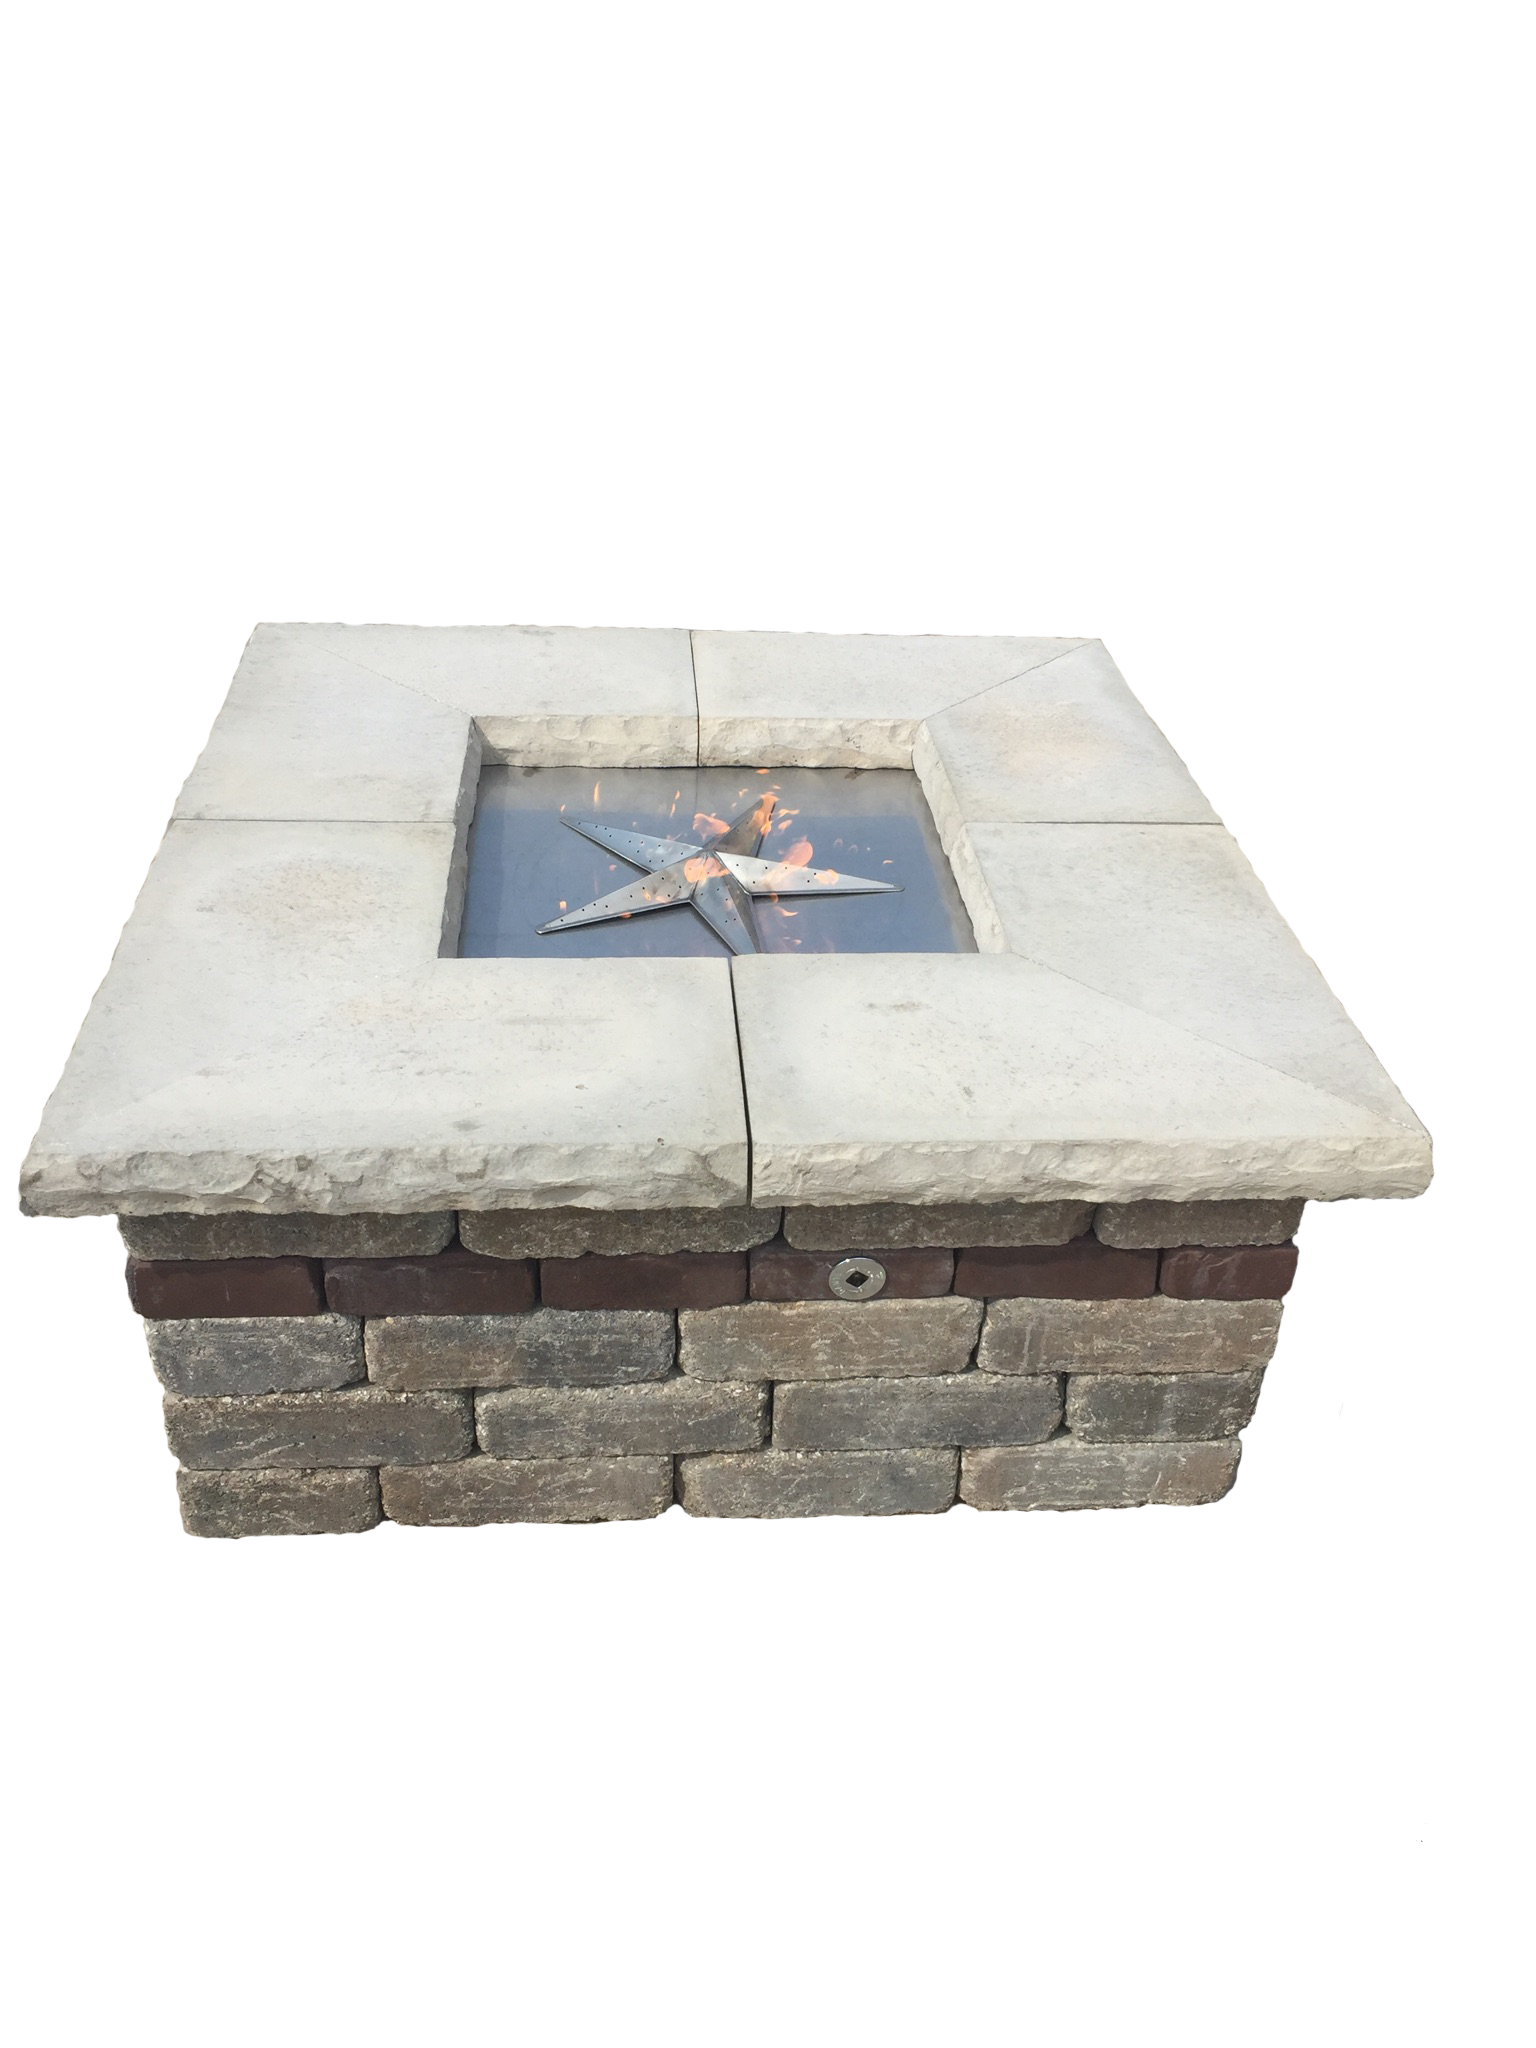 square fire pit kit burner techo bloc unilock belgard reading rock fireboulder firestar Top Result 50 Awesome Natural Gas Fire Table